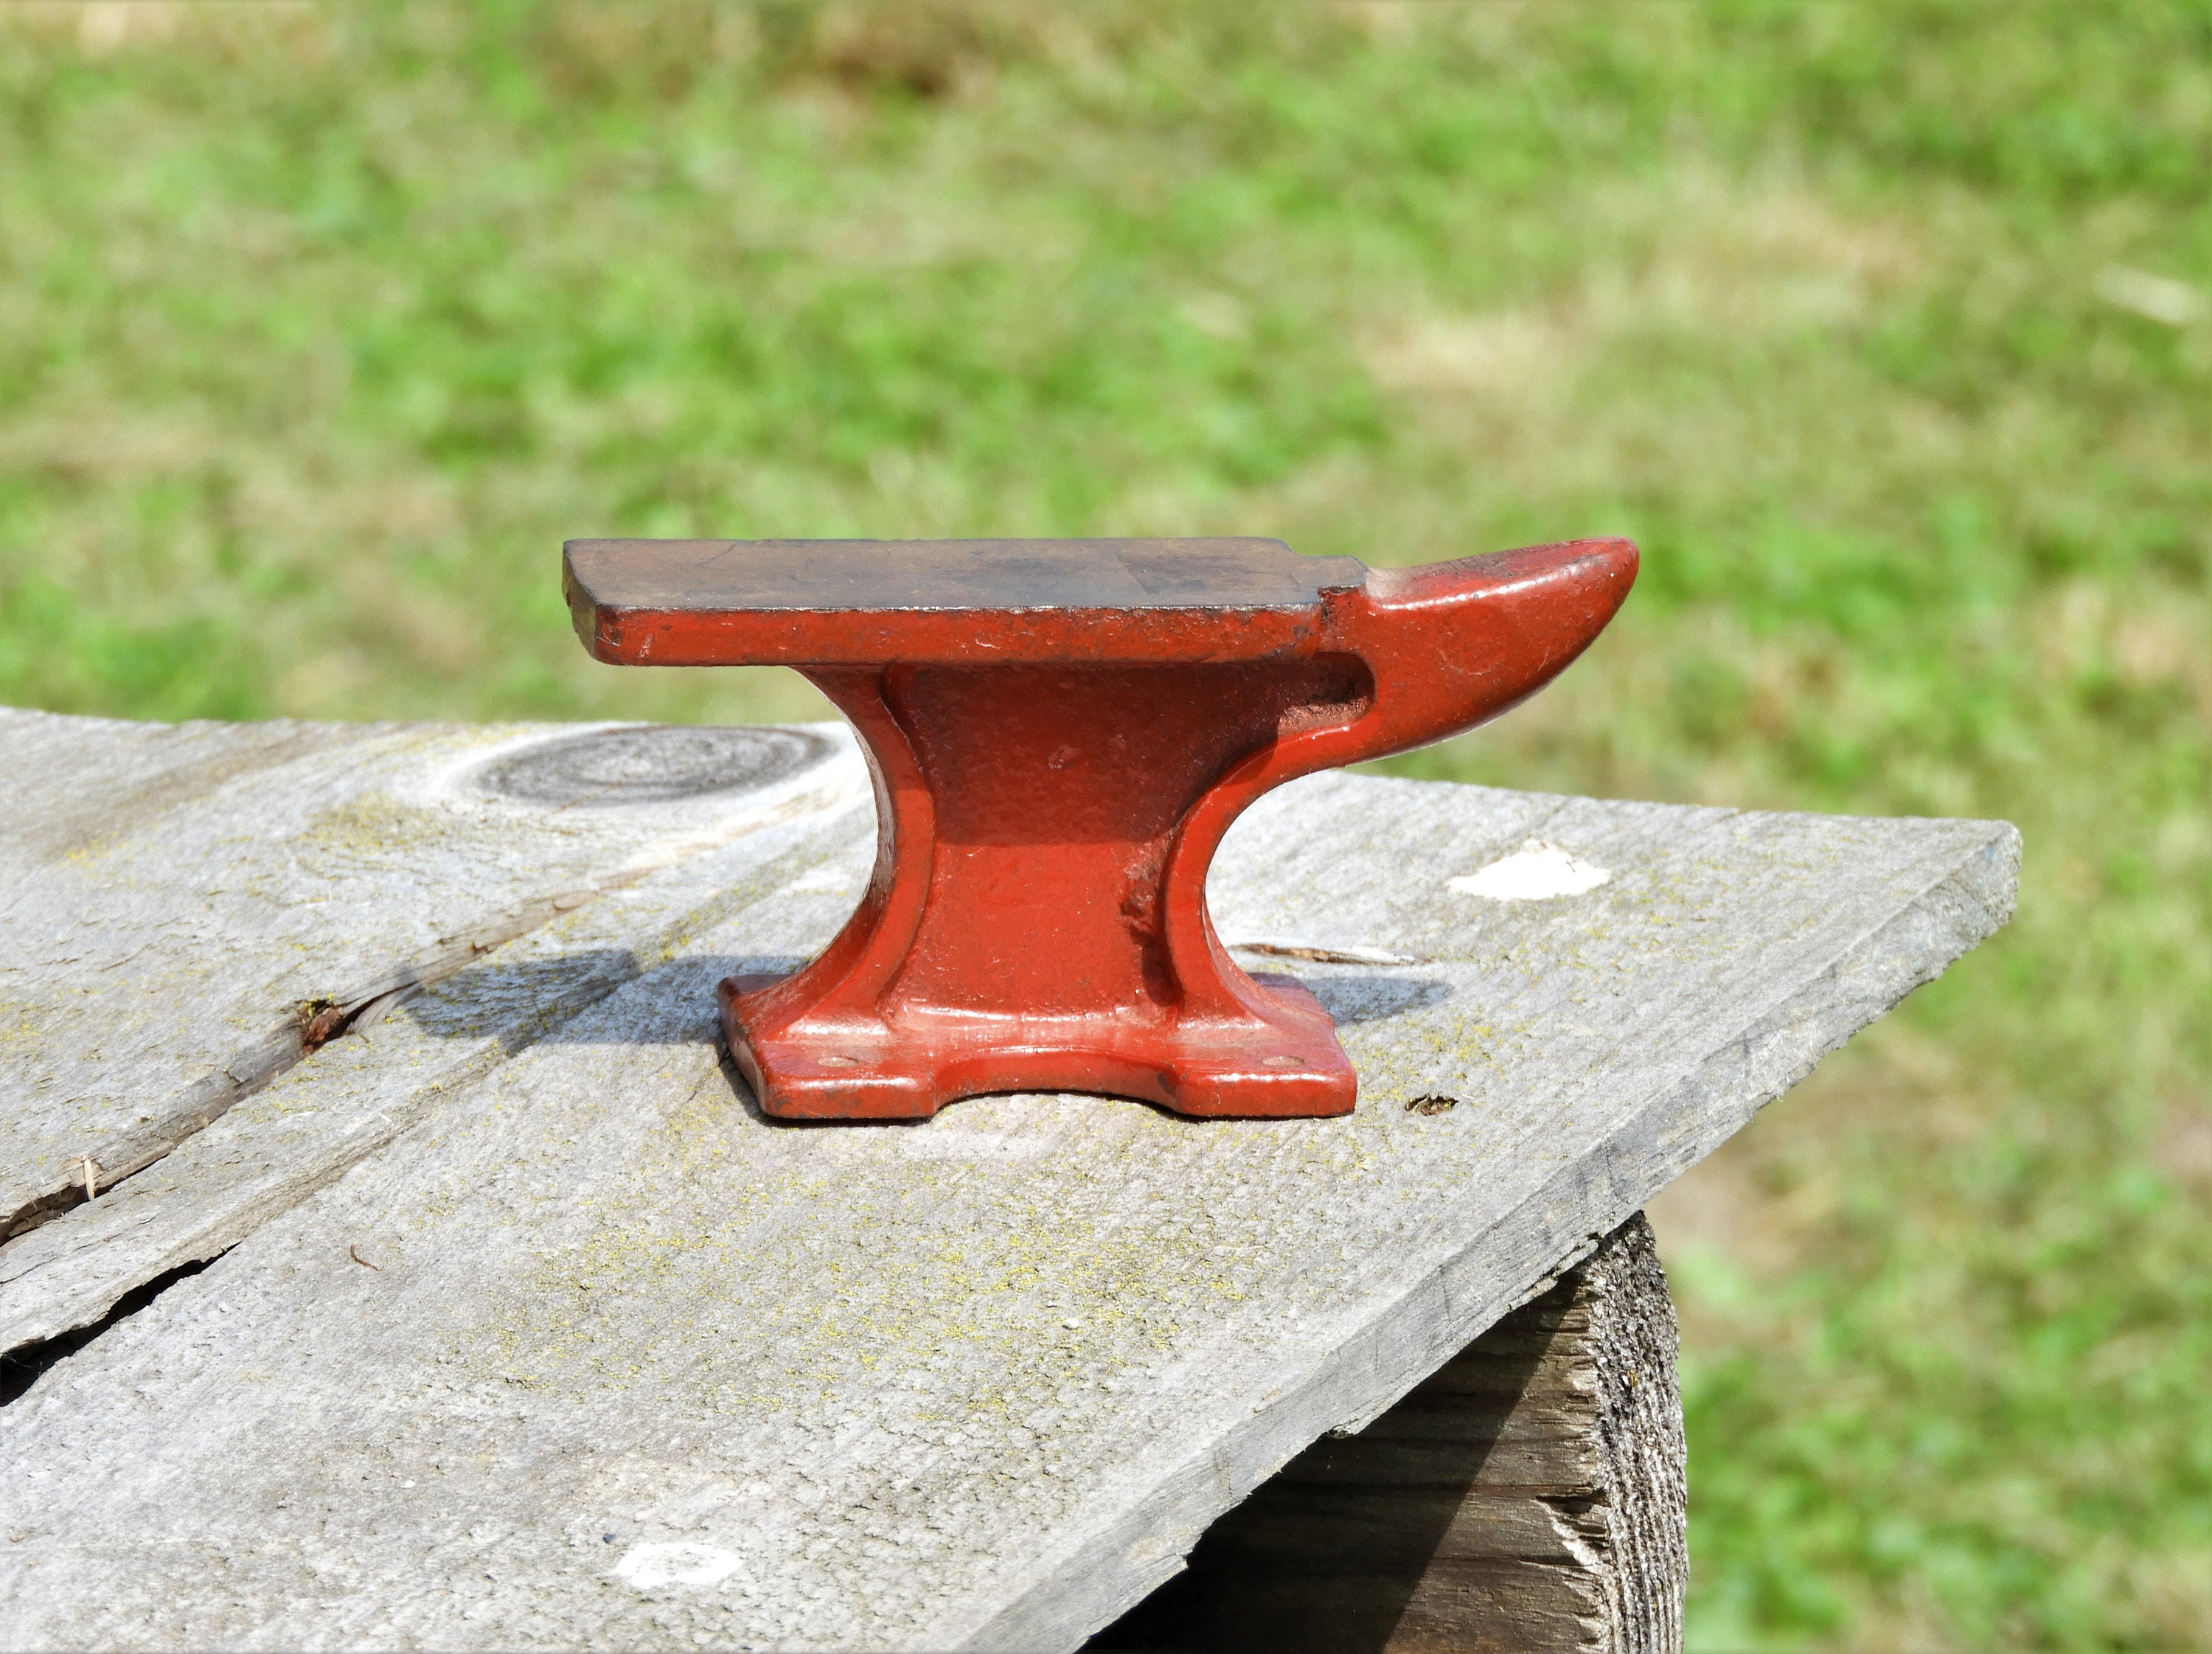 Vintage Jewelers Anvil, Red Smiths Tool, Metal Shaping